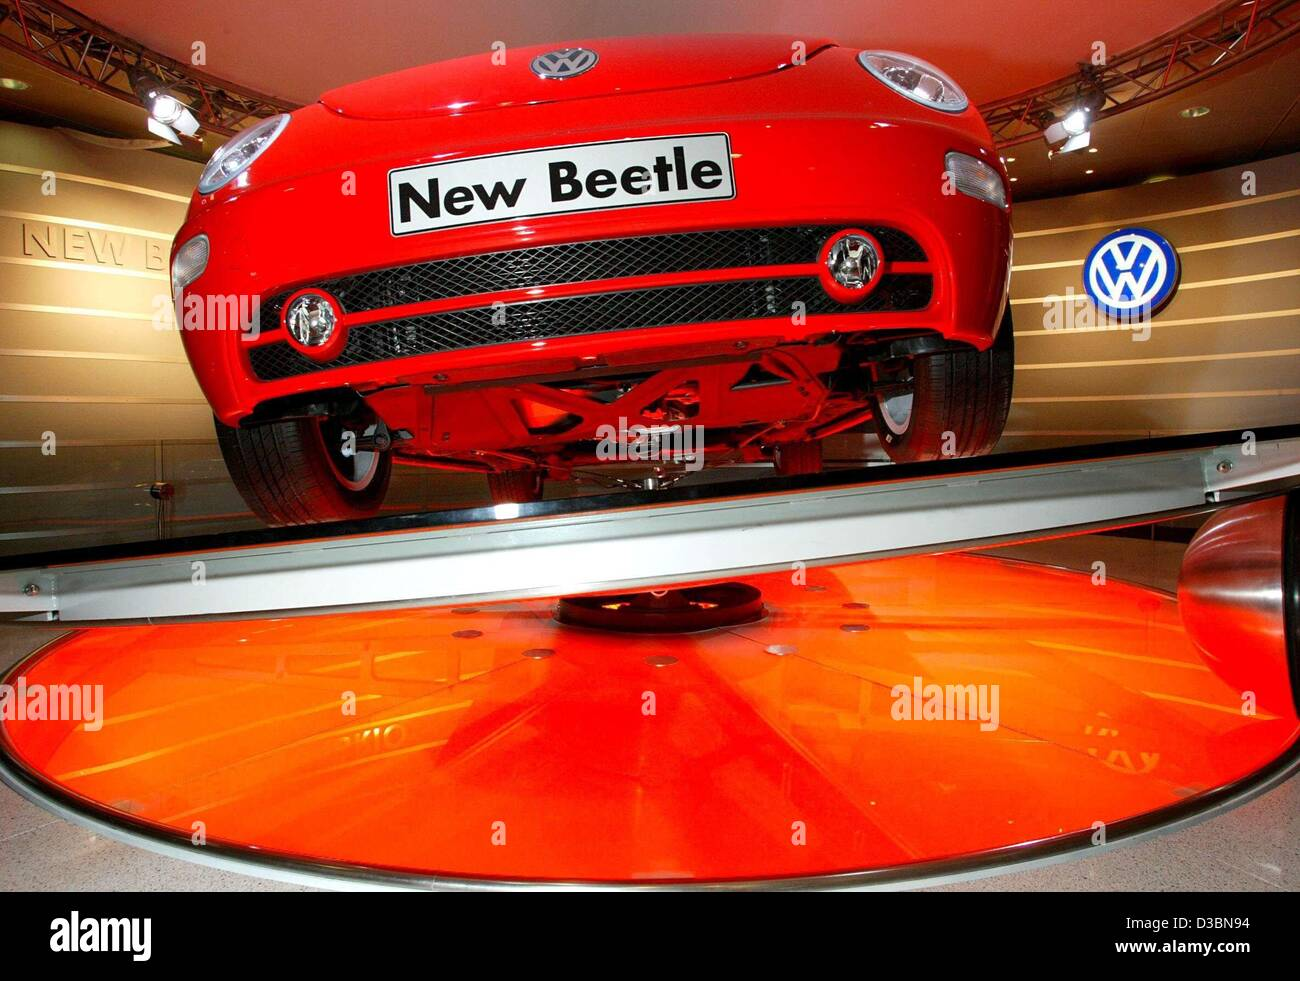 (dpa) - A red VW New Beetle rotates on a disc, at the general meeting of the German Volkswagen (VW) car manufacturers - Stock Image